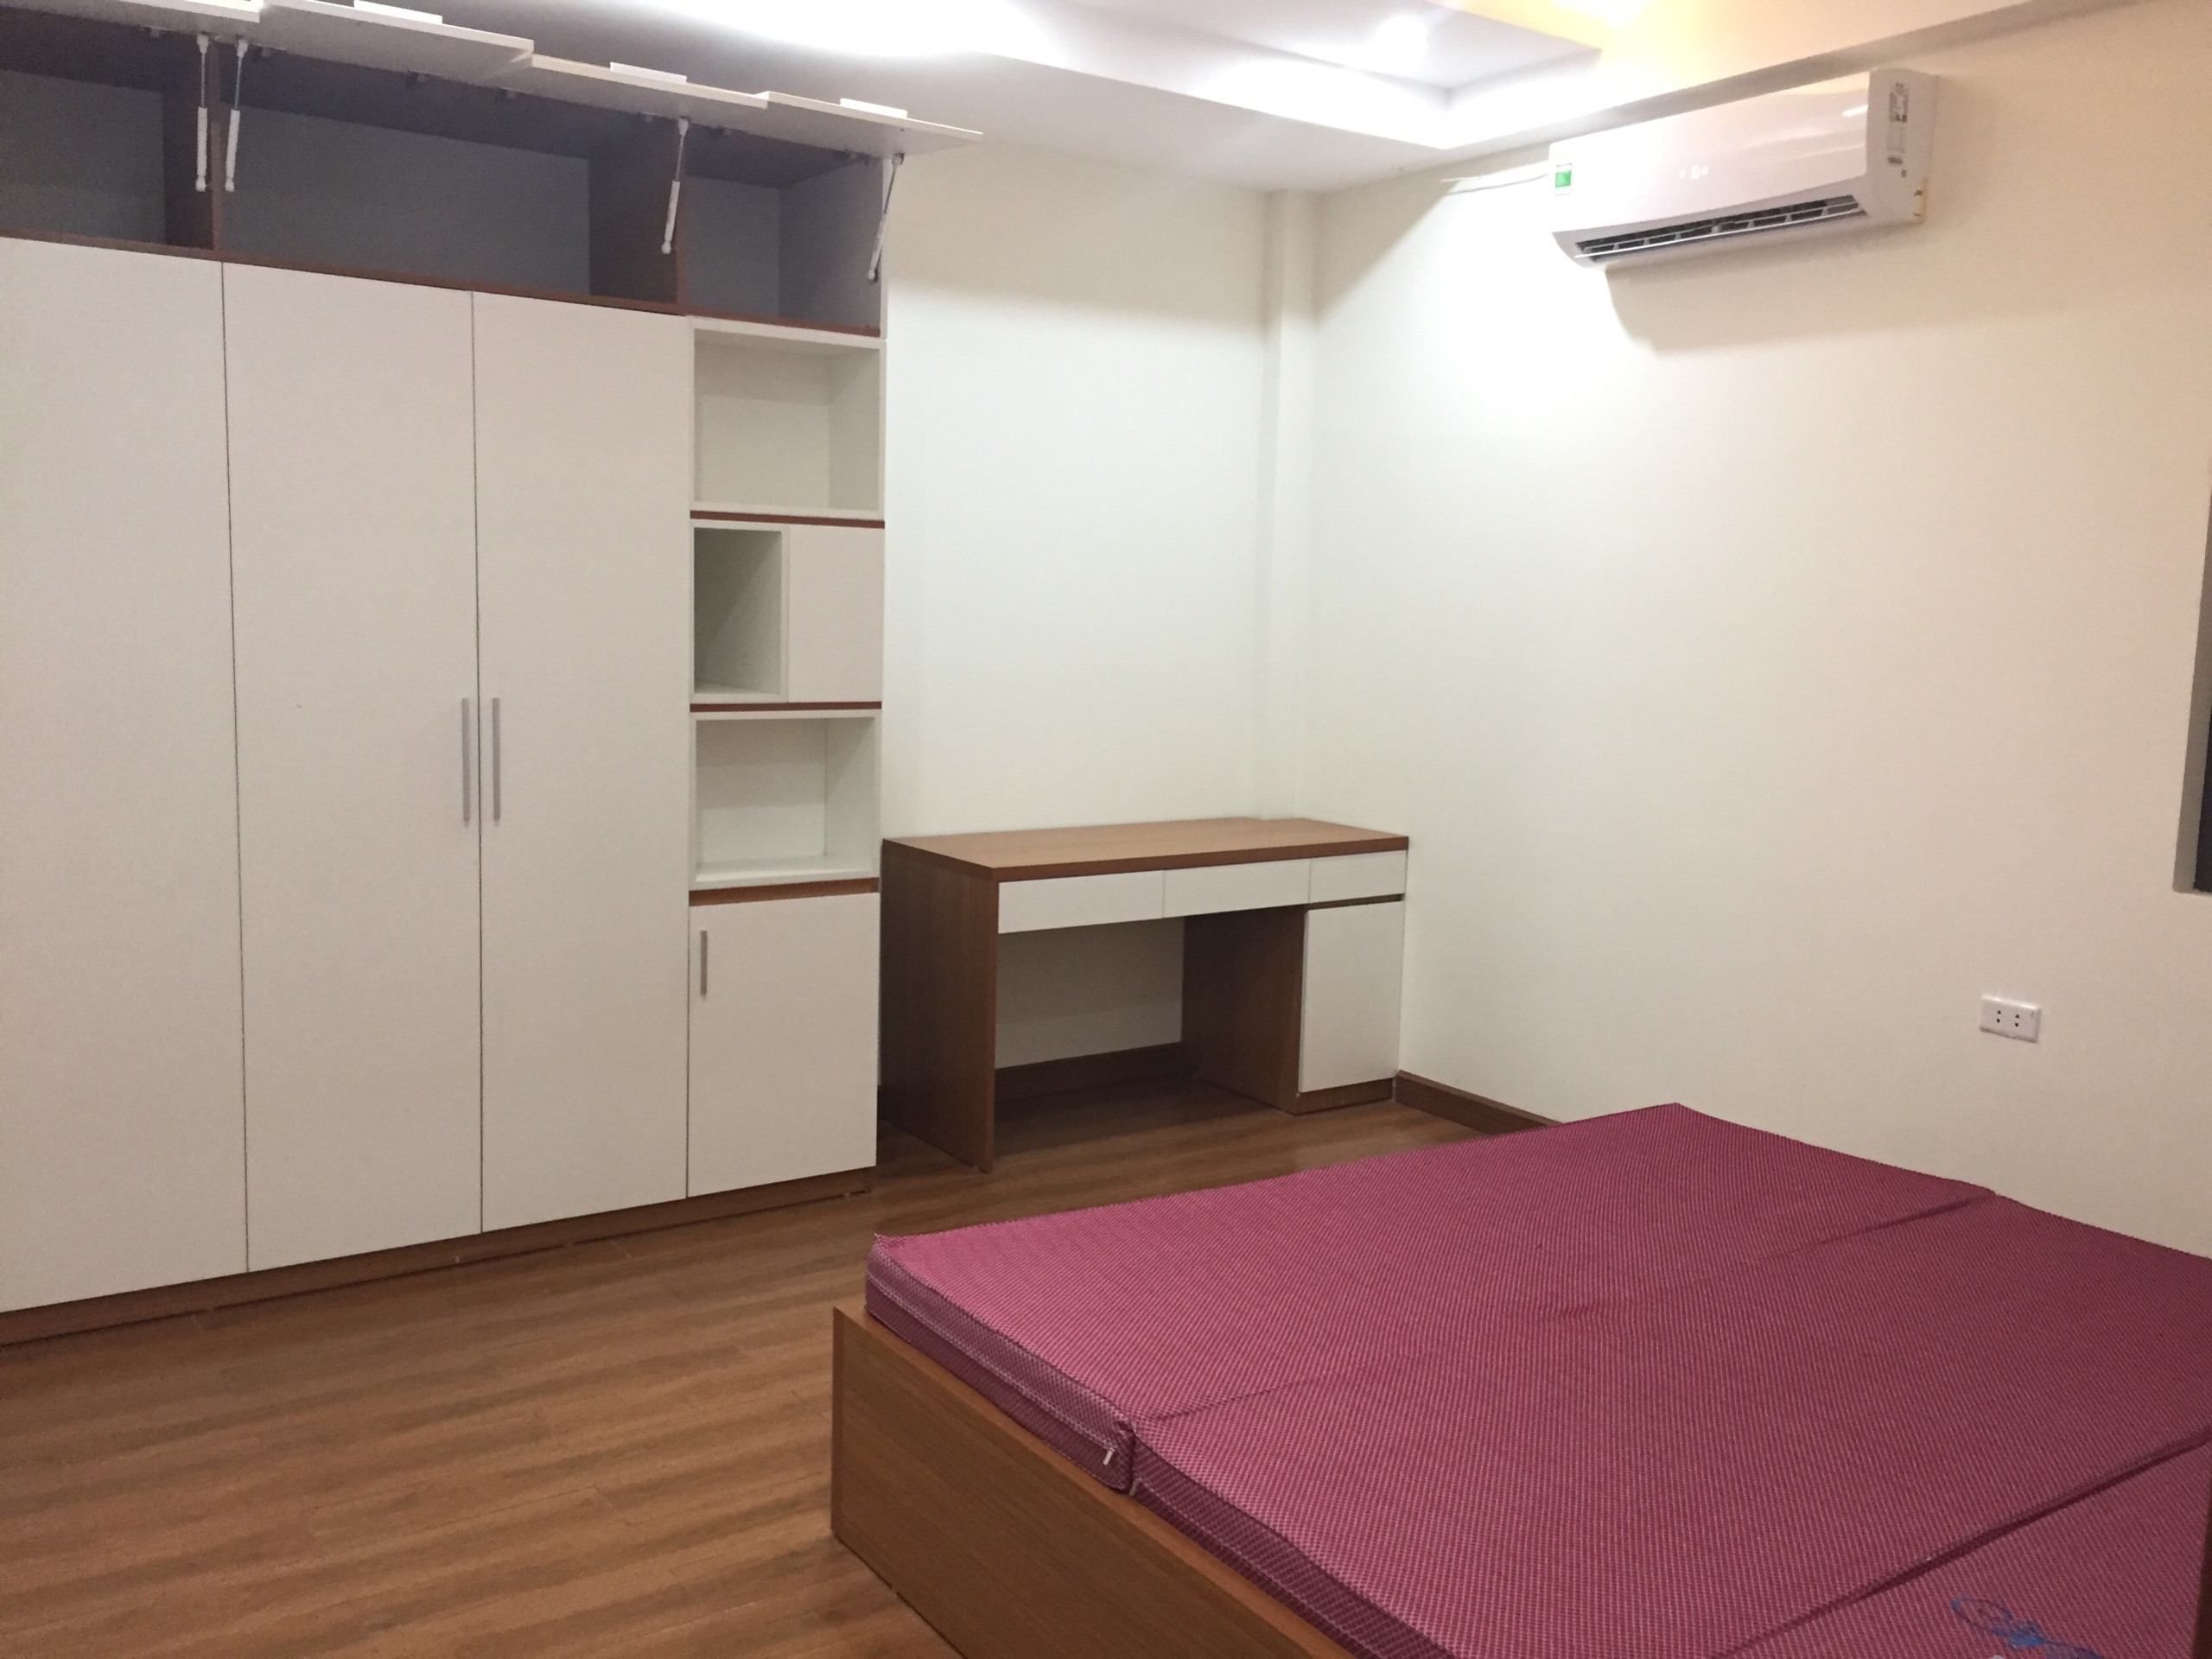 Nice 2 BRs furnished flat for rent at Van Cao street, Hai Phong city